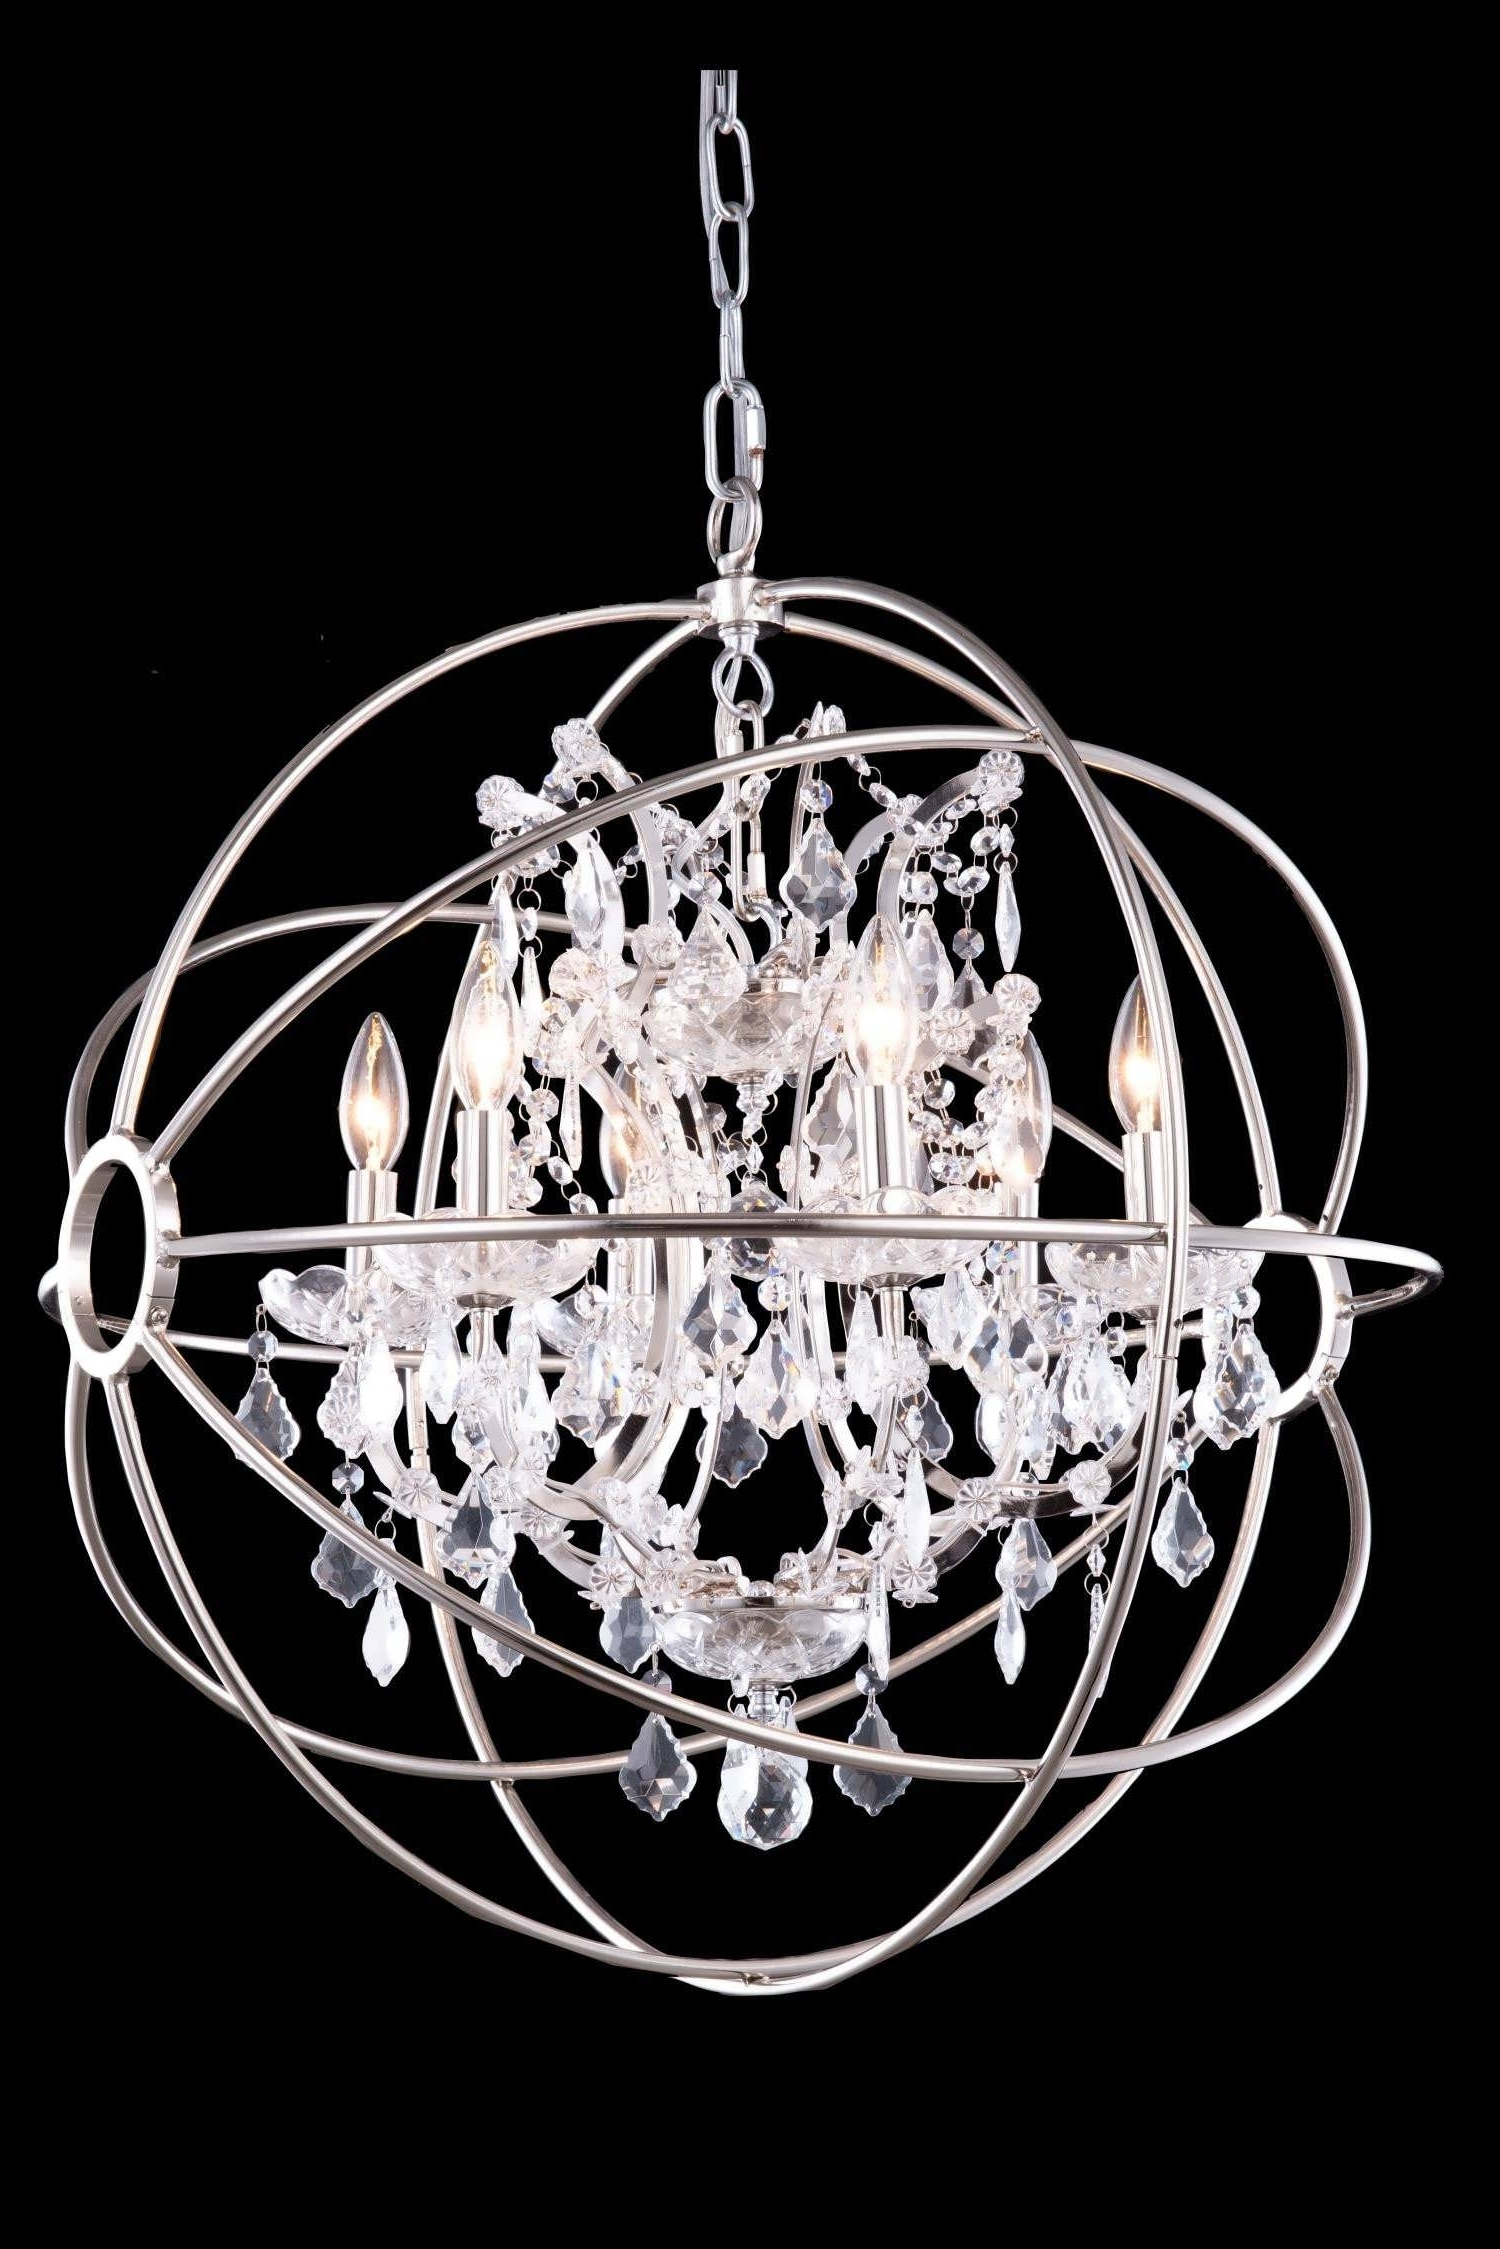 Chandeliers Design : Magnificent Beautiful Metal Ball Candle Within Well Liked Metal Ball Candle Chandeliers (View 9 of 20)